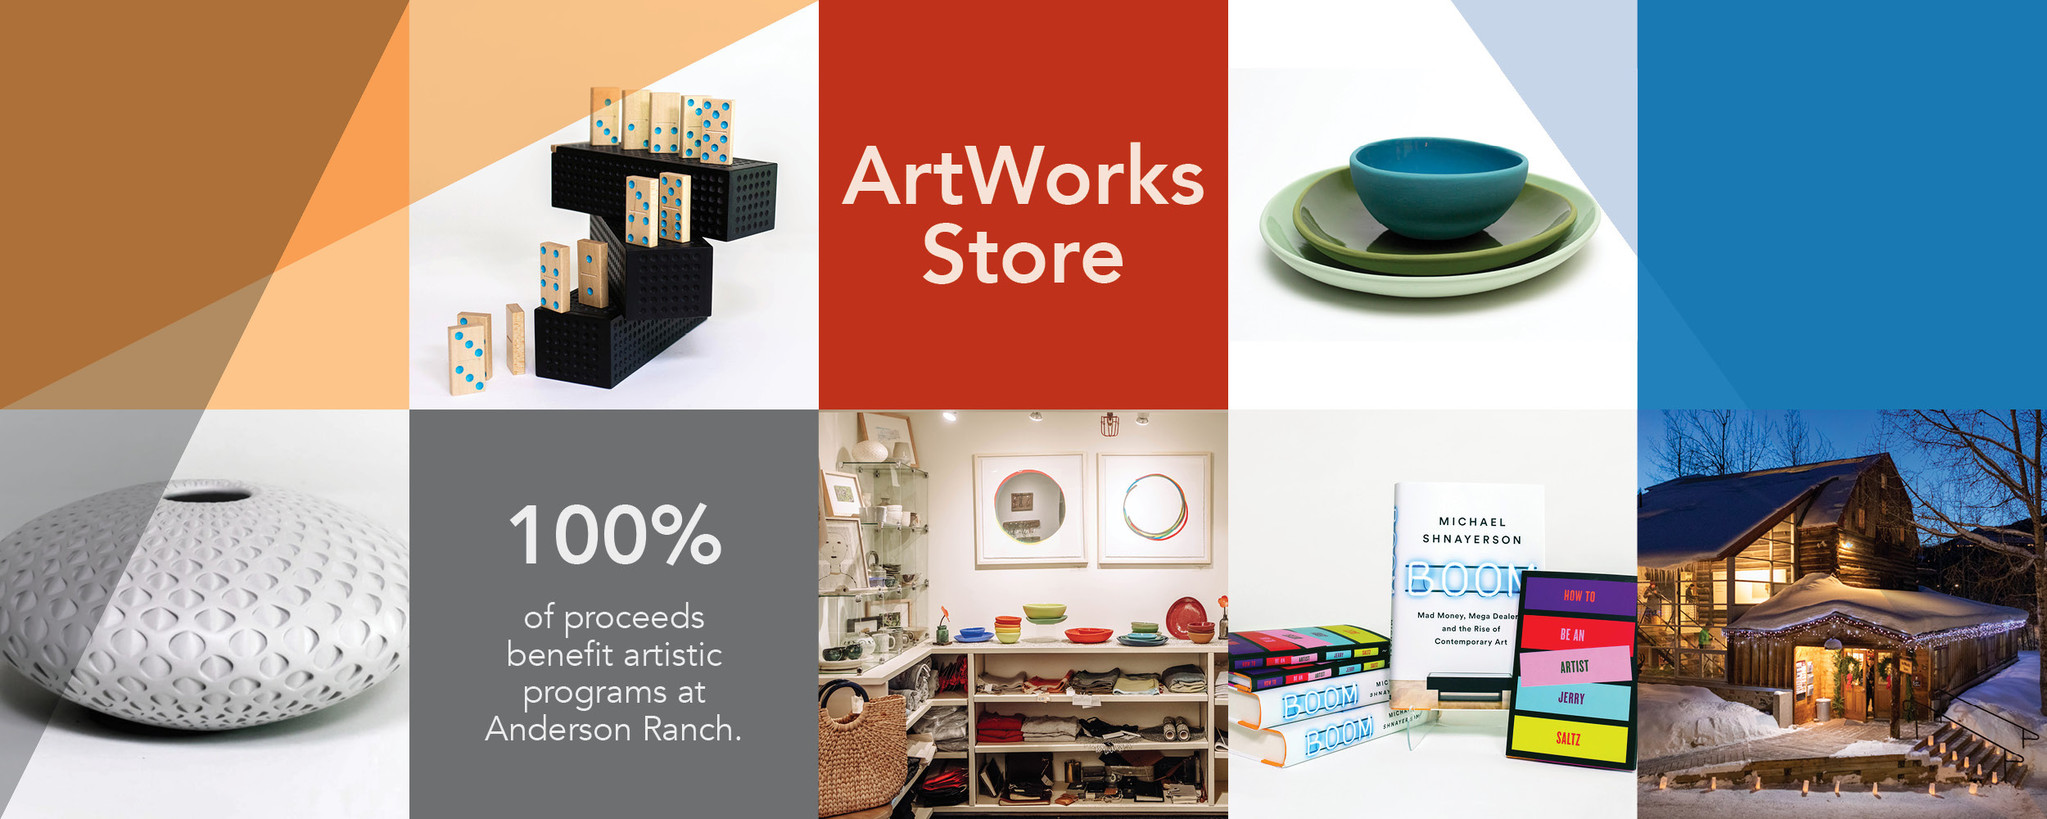 The ArtWorks Store